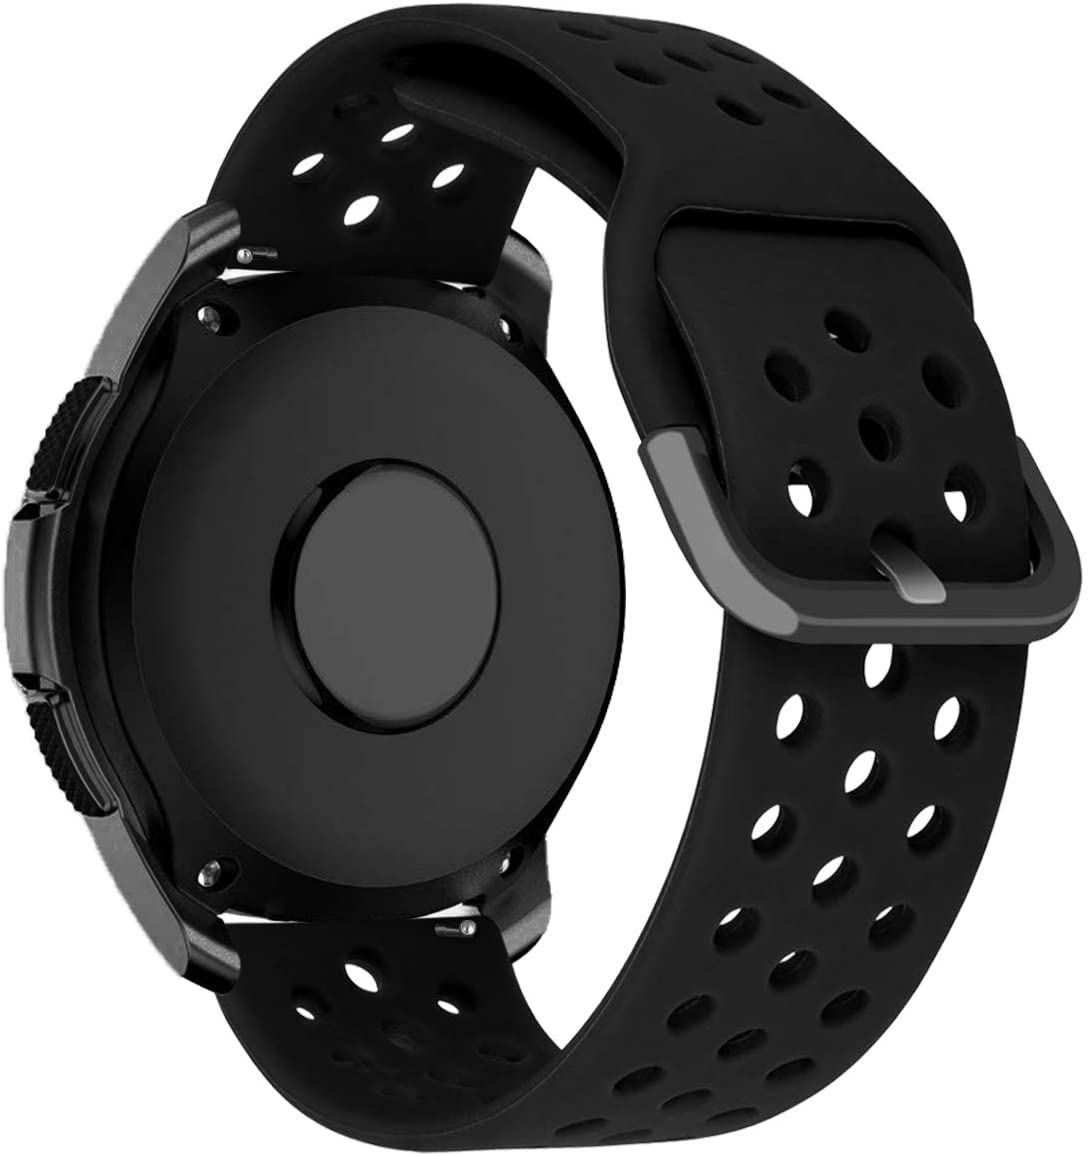 iBazal Galaxy Watch Active2 Band 40mm 44mm Silicone 20mm Compatible with Samsung Galaxy Watch 42mm,Active 40mm,Gear S2 Classic,Gear Sport Wrist Strap Replacement Sport Wristband Bracelet - Black